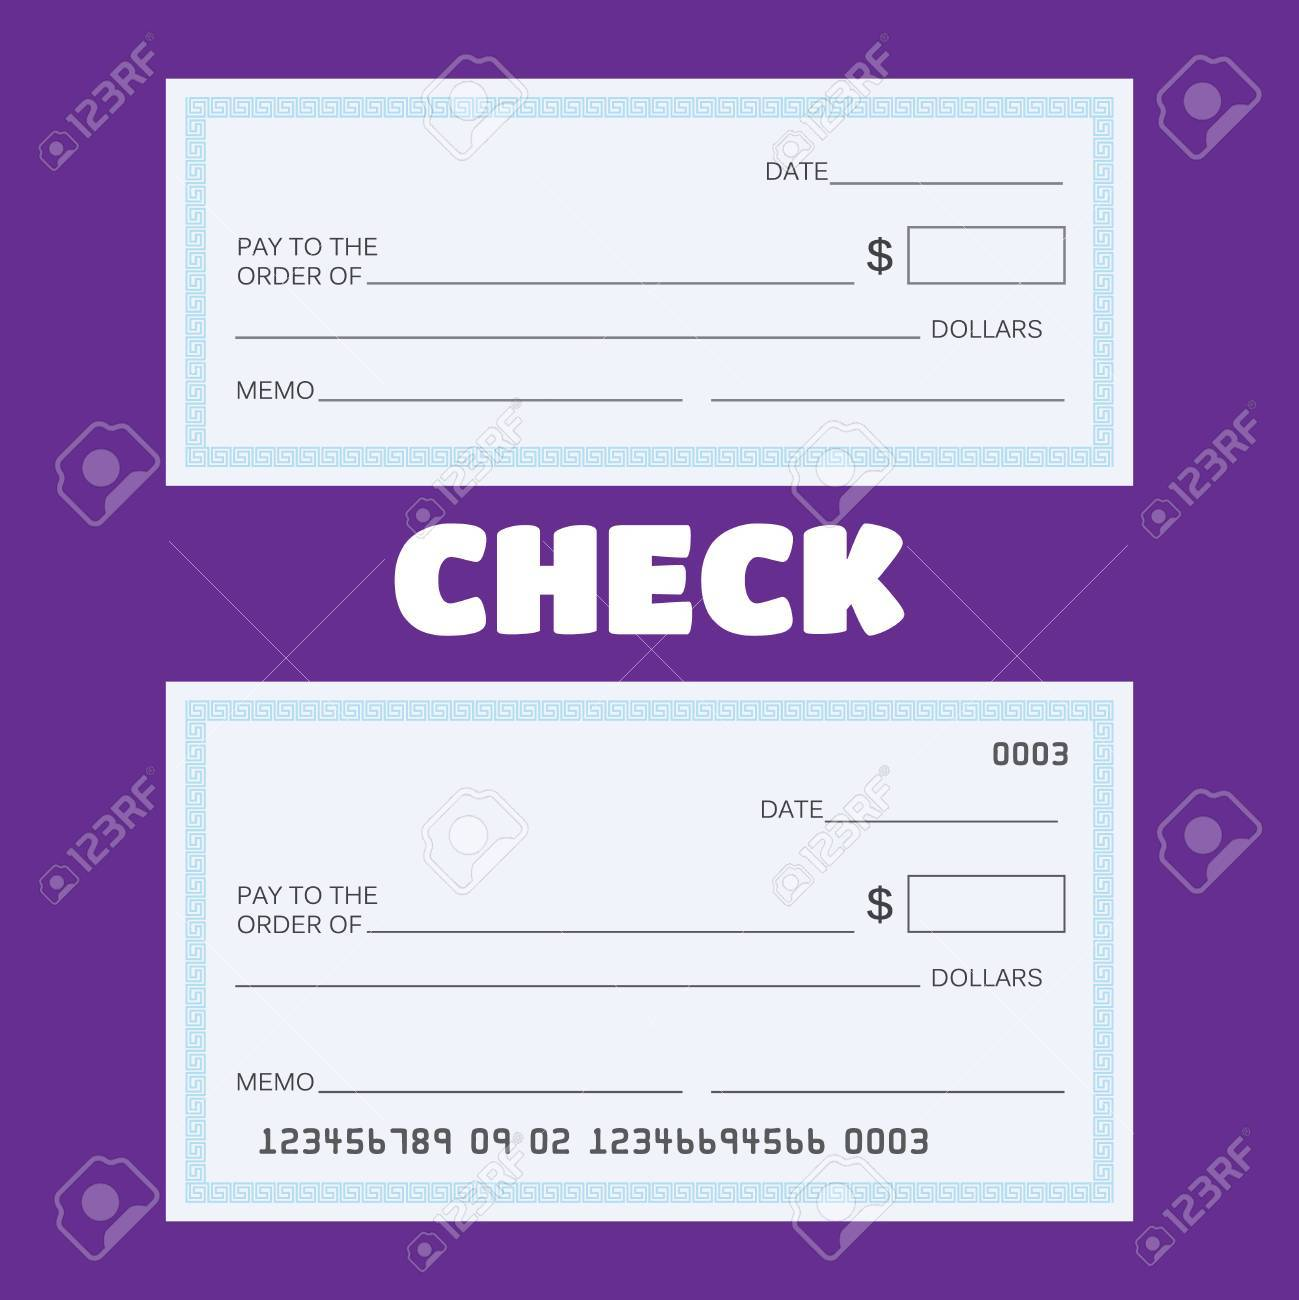 Blank check blank check template royalty free cliparts vectors blank check template stock vector 72897560 pronofoot35fo Image collections